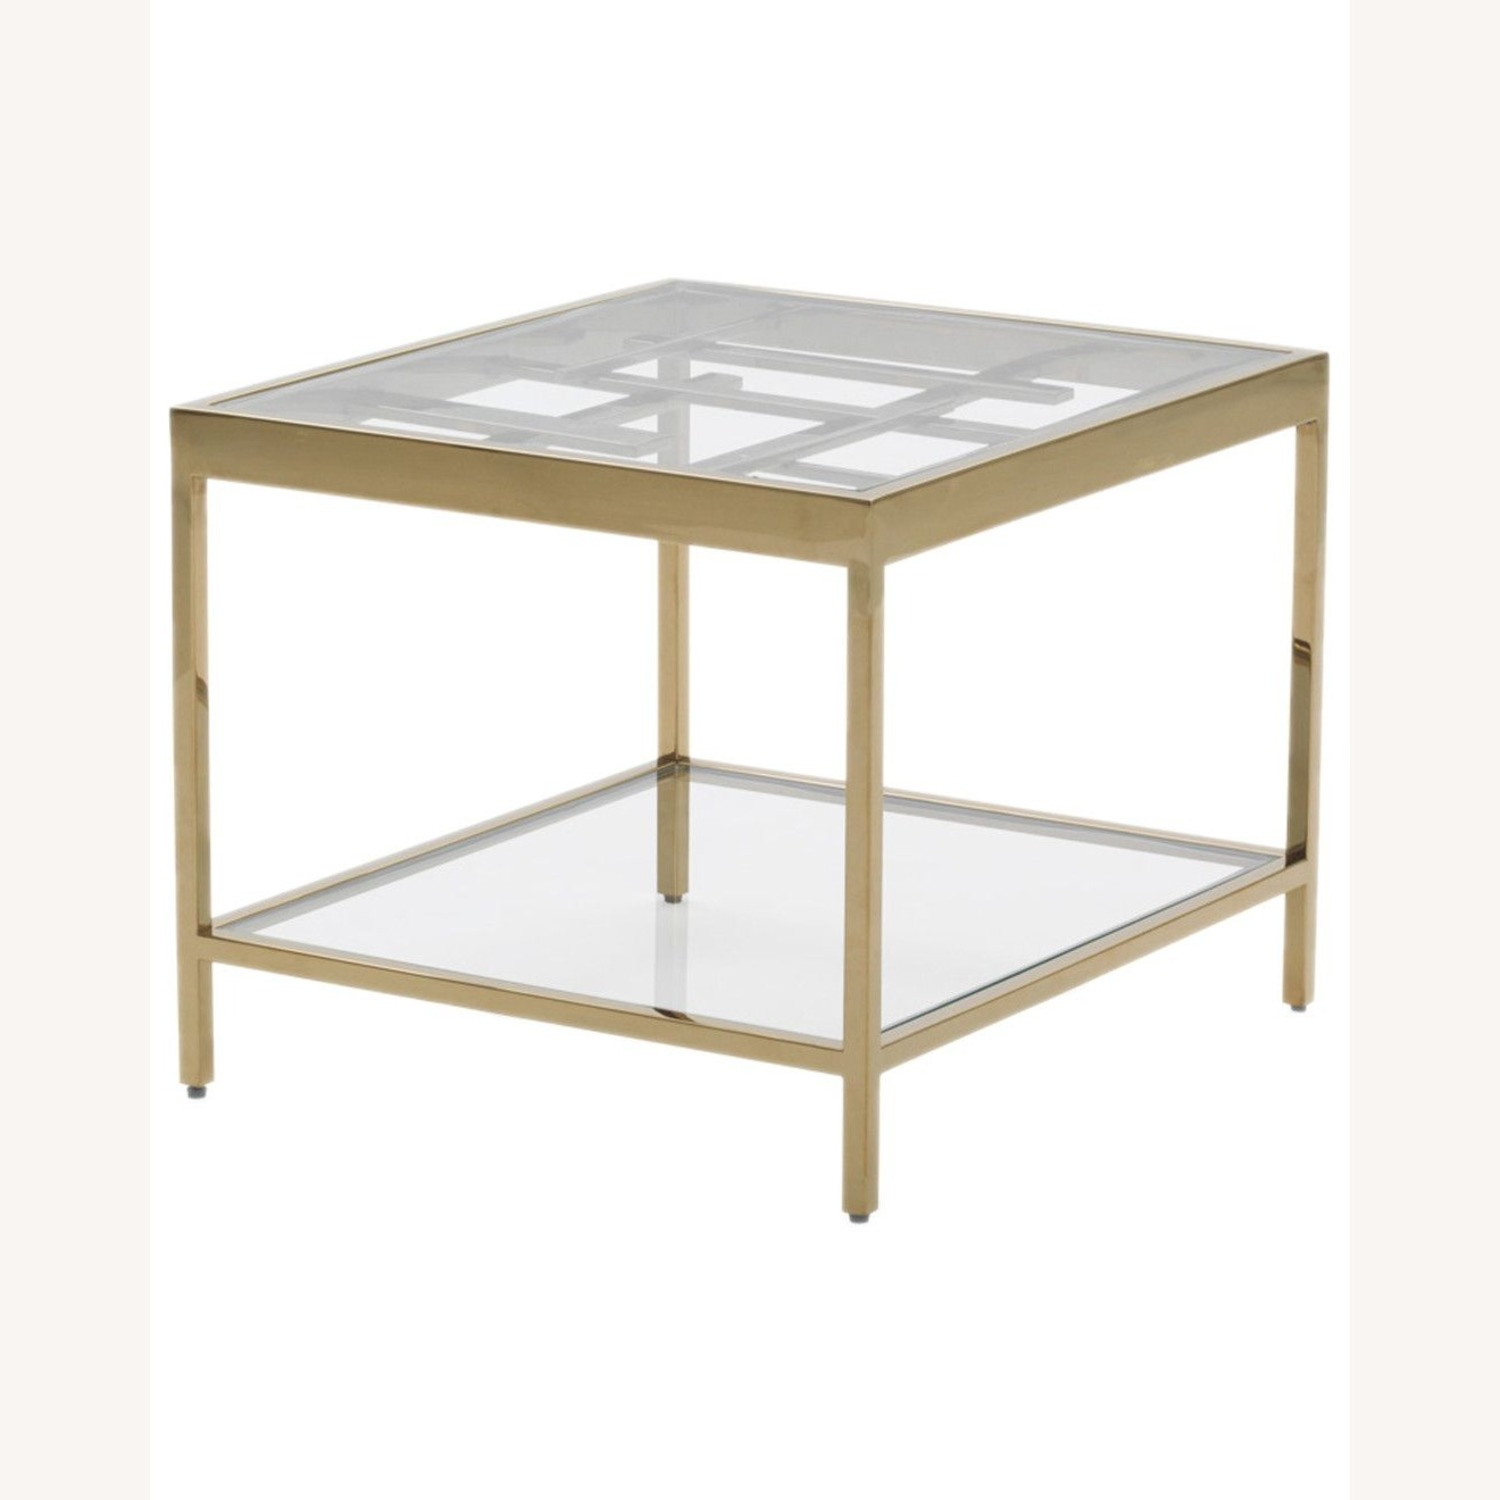 Mitchell Gold + Bob Williams Jules Side Tables - image-1